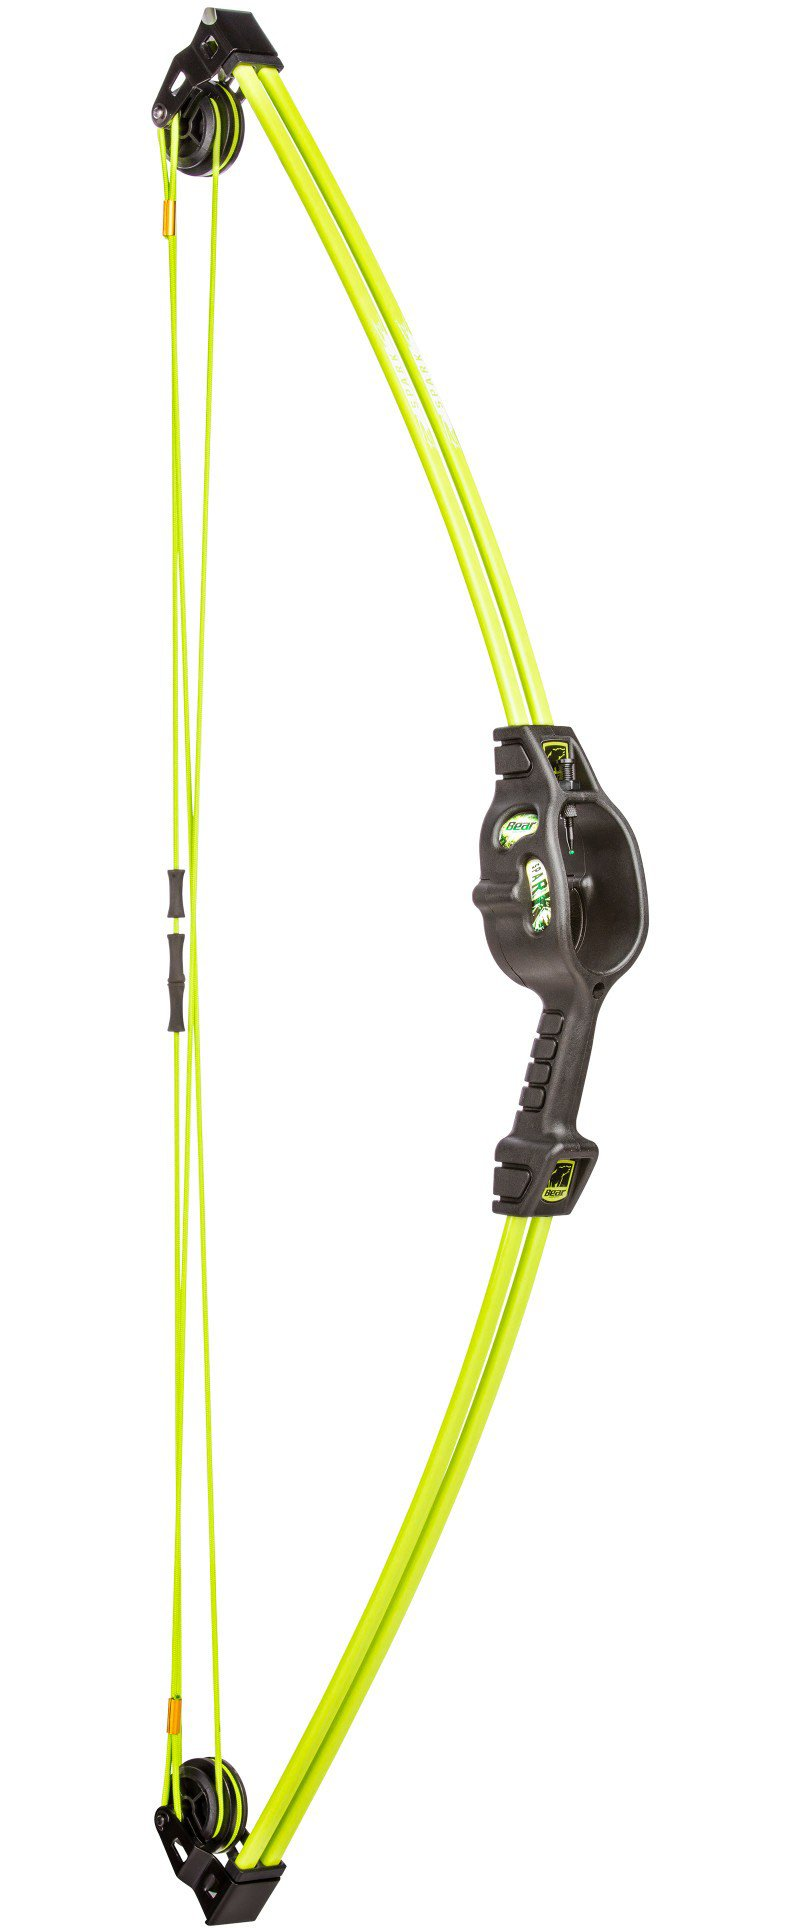 Bear Archery Youth Spark Vertical Bow Green - Archery, Bows And Cross Bows at Academy Sports thumbnail